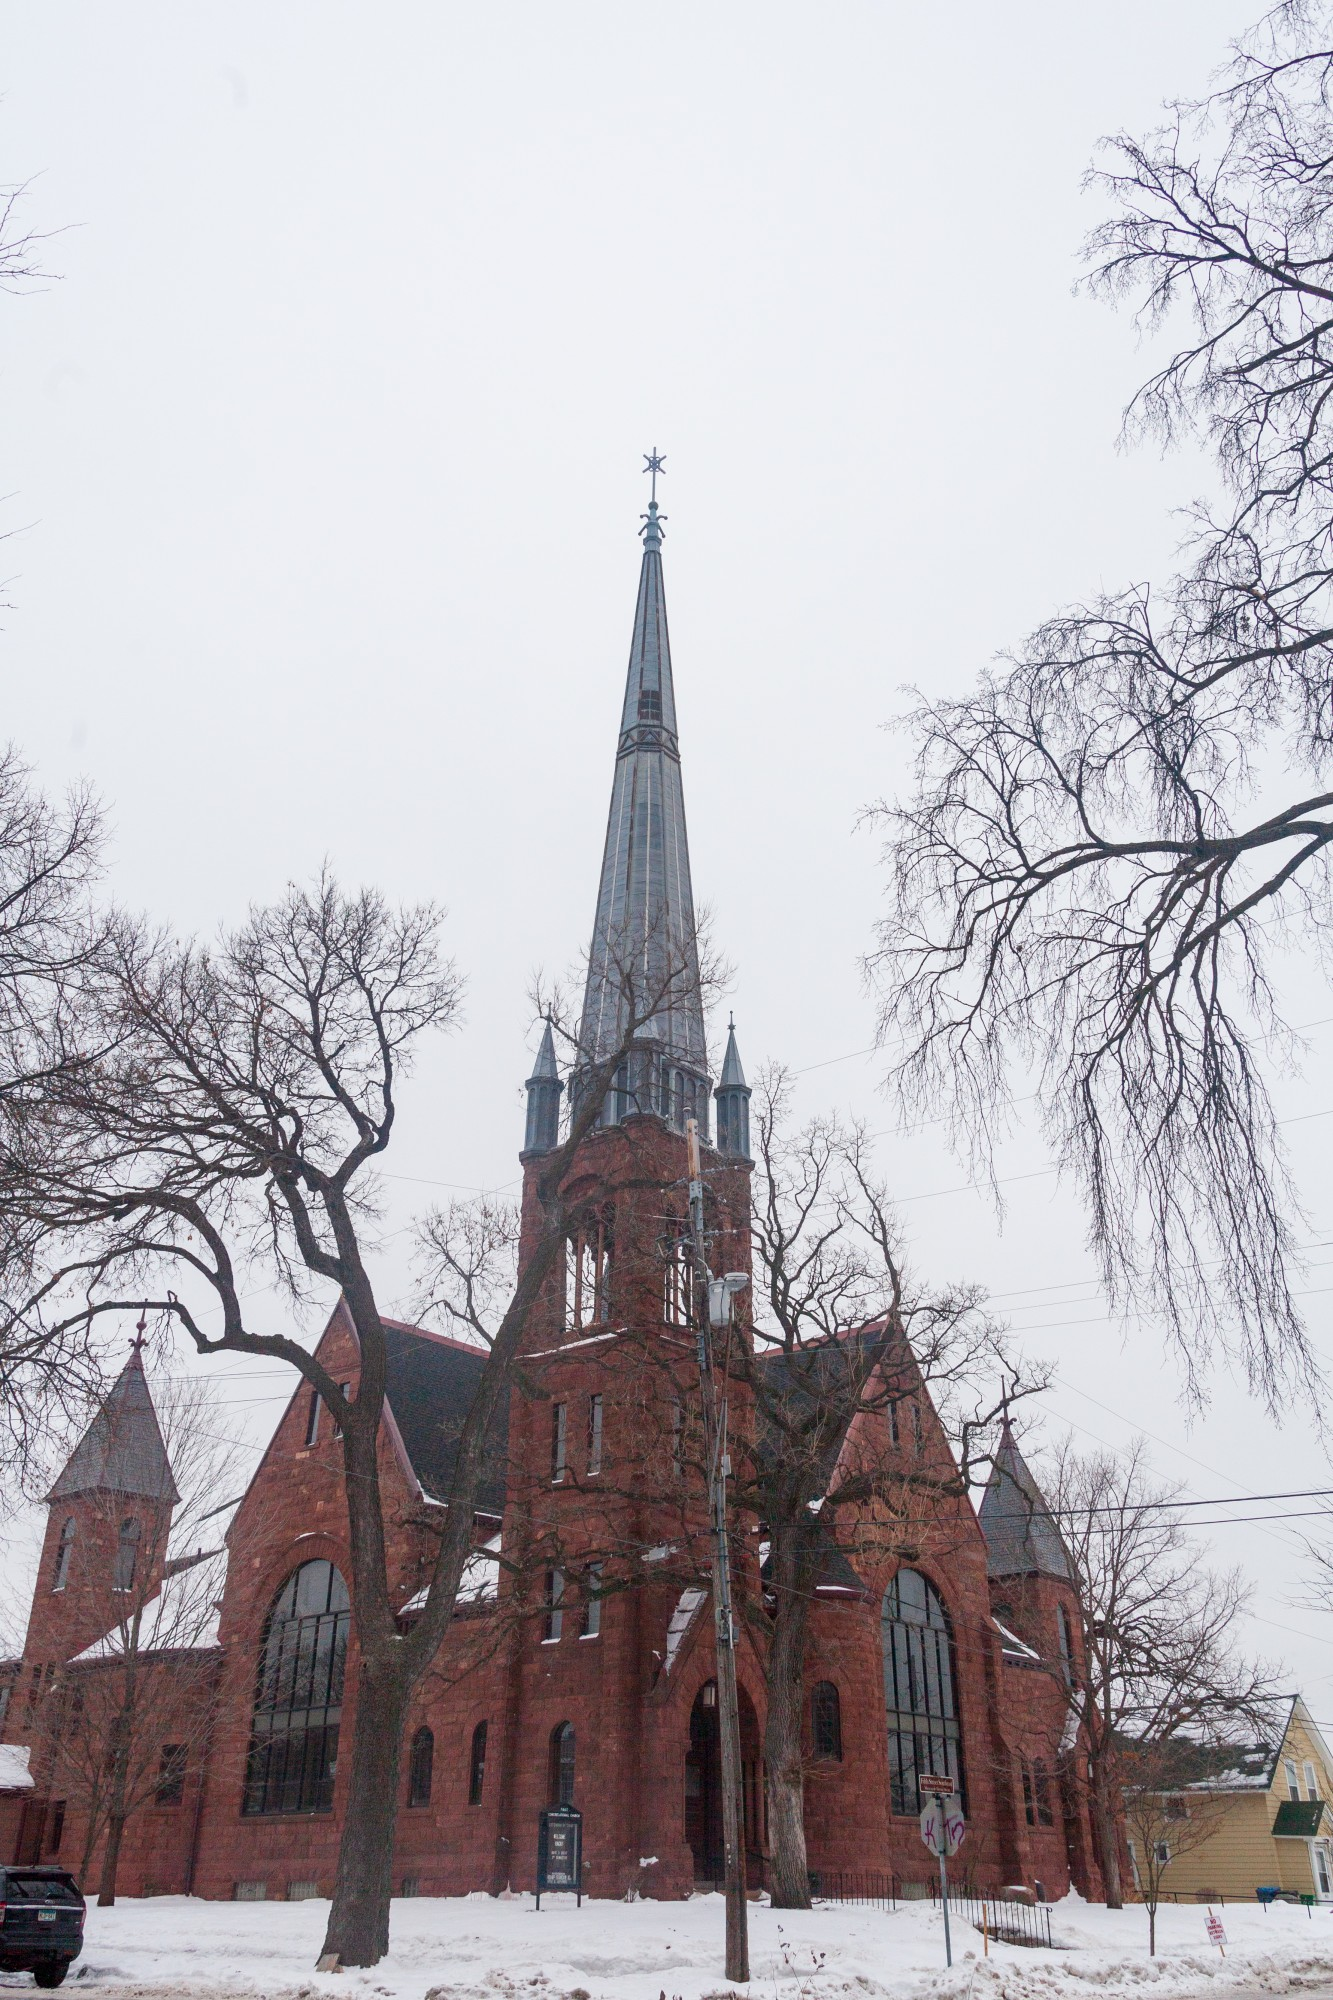 The First Congregational Church is nestled between single family residences in the Marcy Holmes neighborhood on Tuesday, Jan. 28.  The neighborhood provides housing for a significant number of University students.